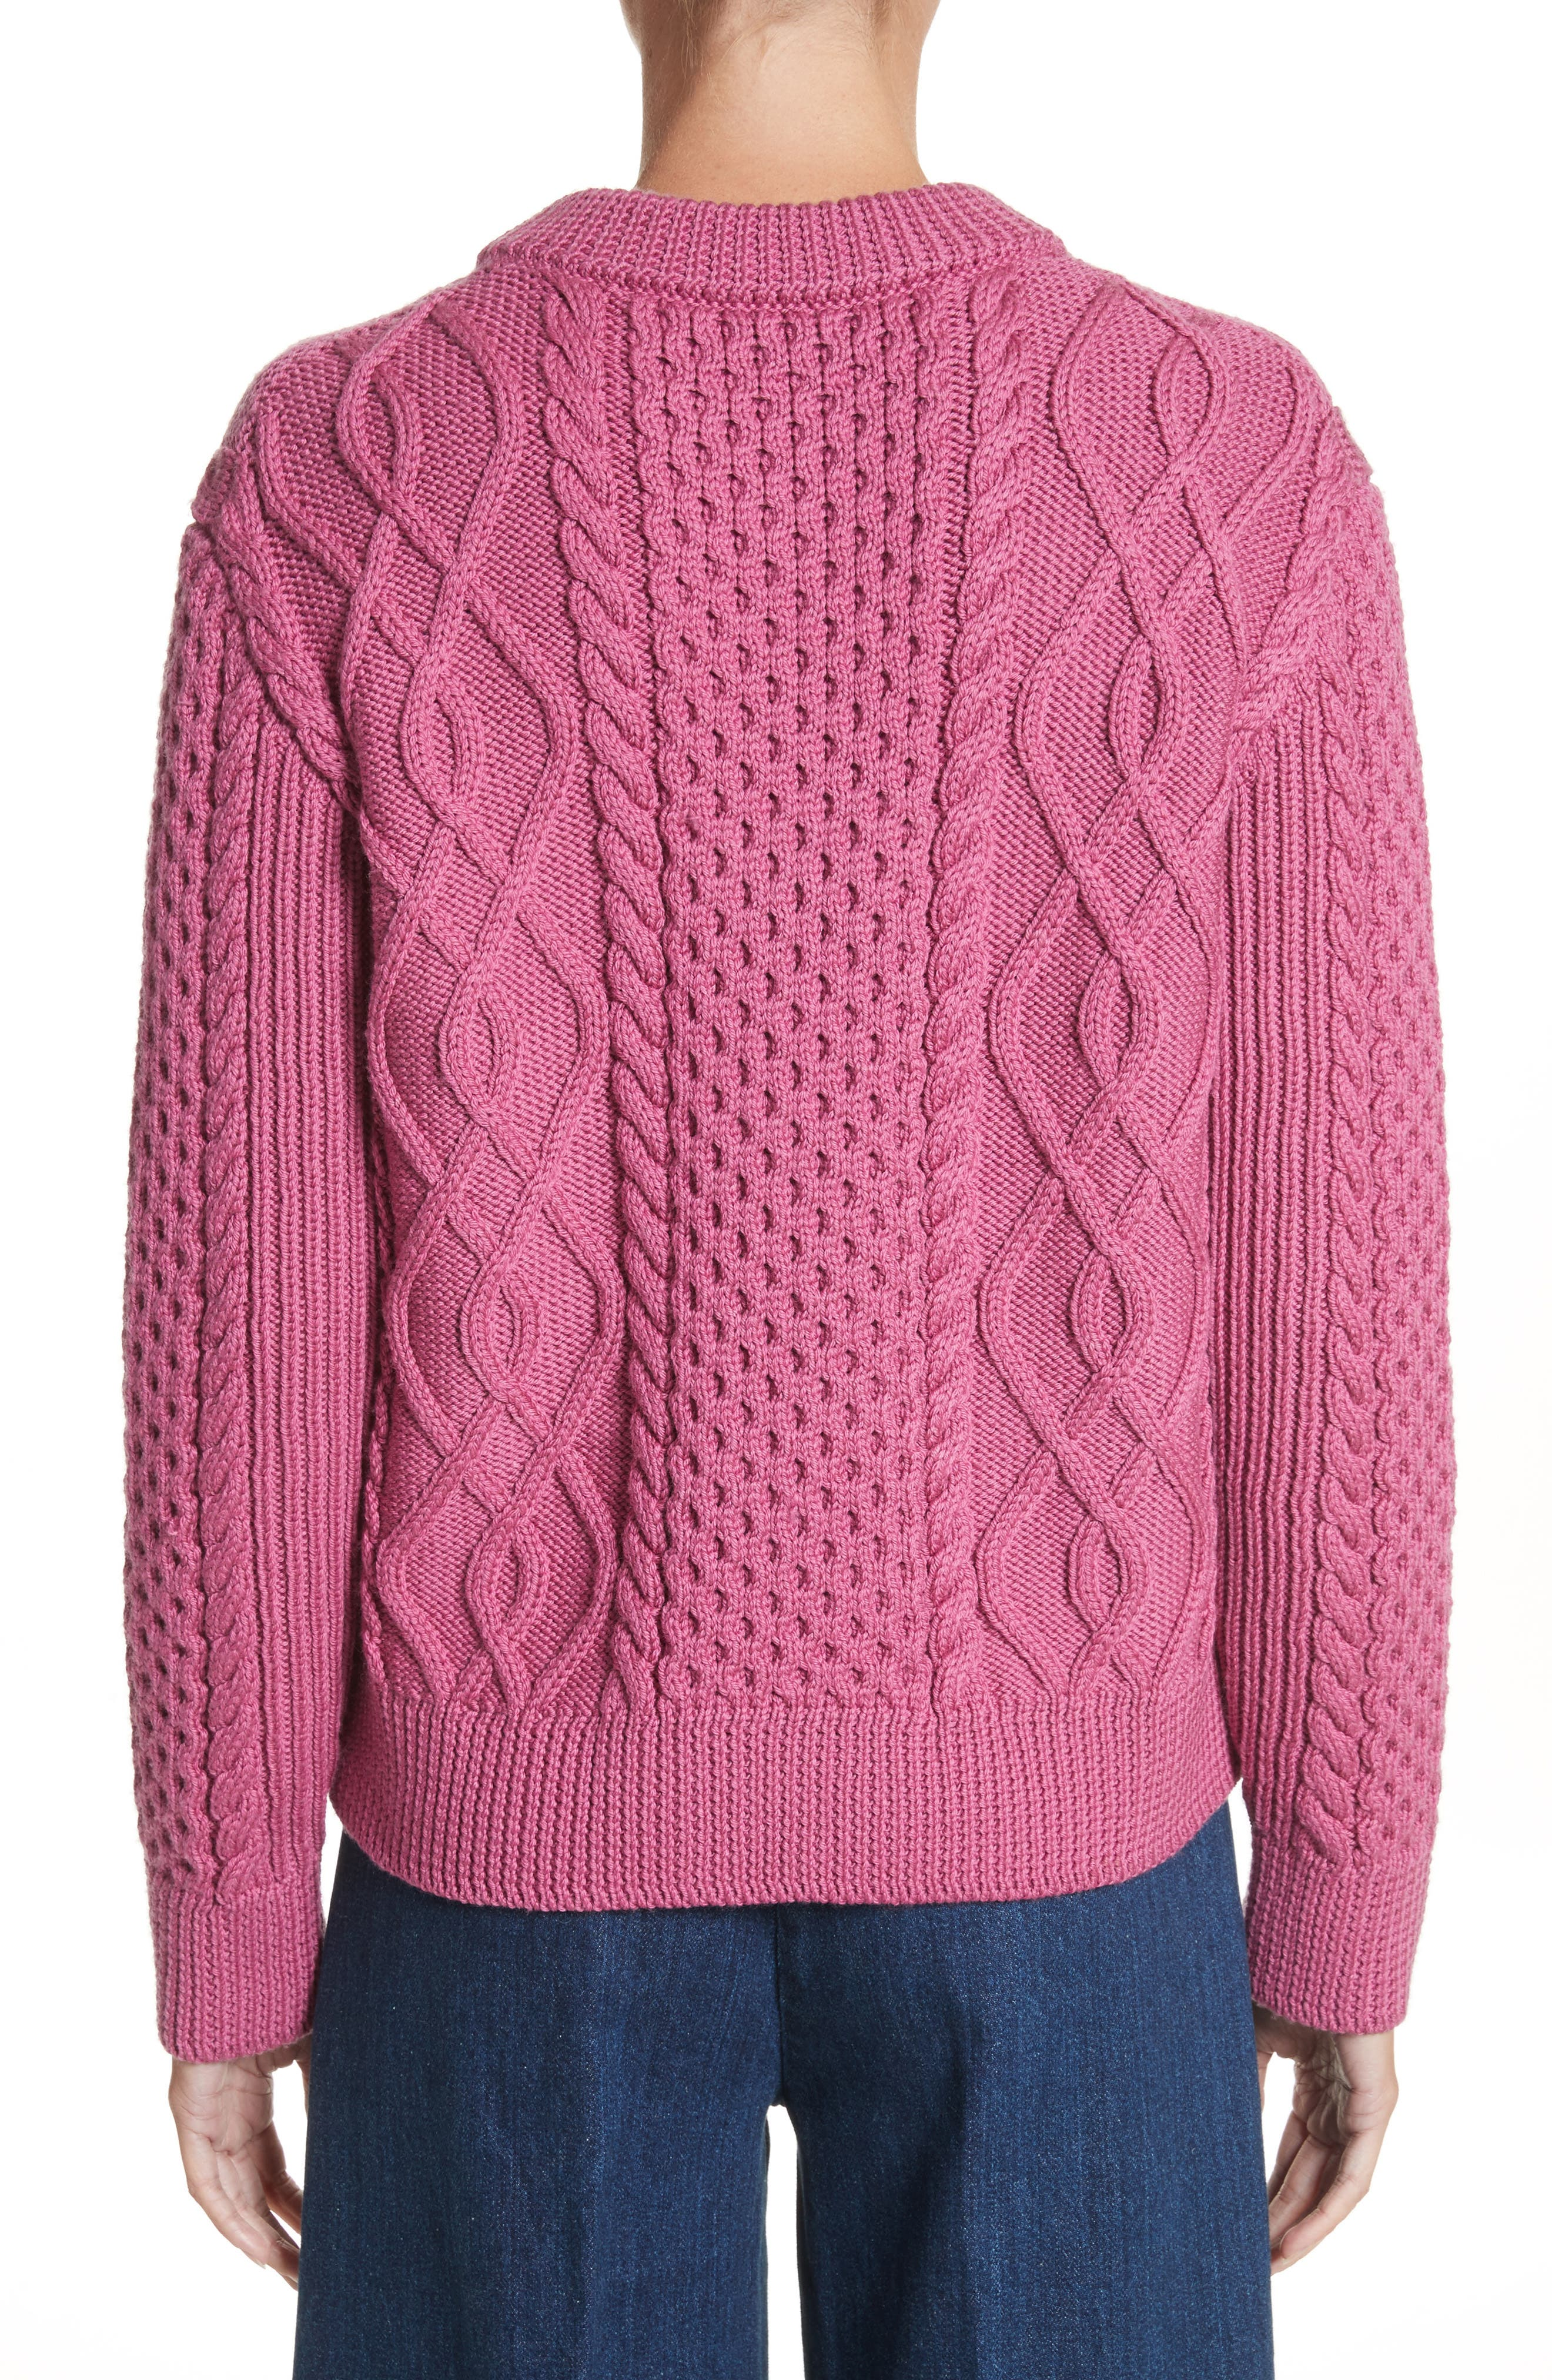 Merino Wool Cable Knit Sweater,                             Alternate thumbnail 2, color,